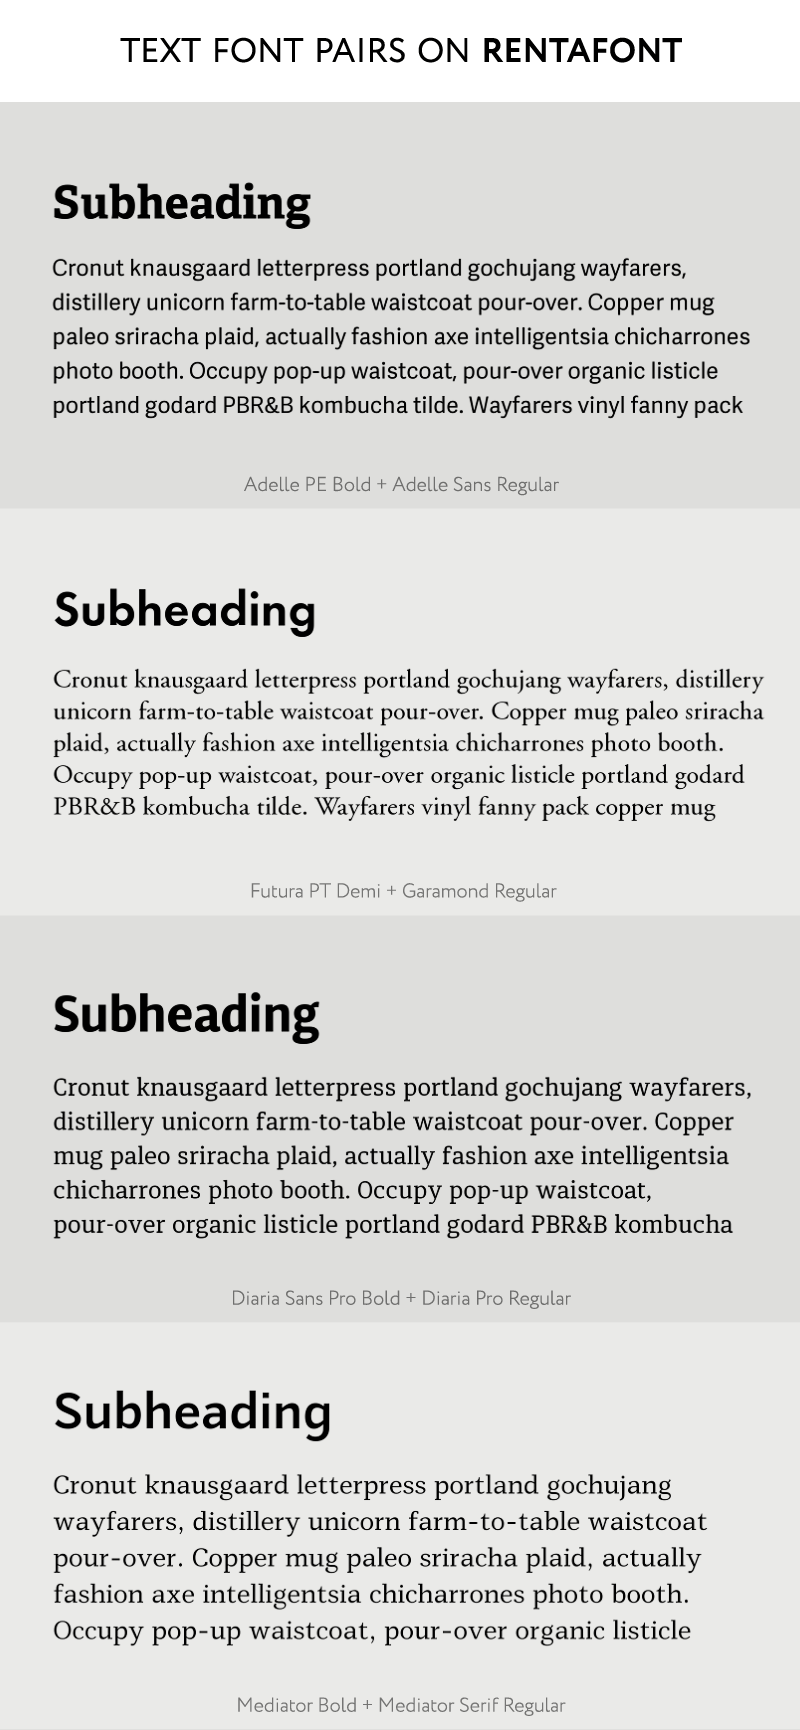 How to Find Ideal Font Pairs for Logos, Headings